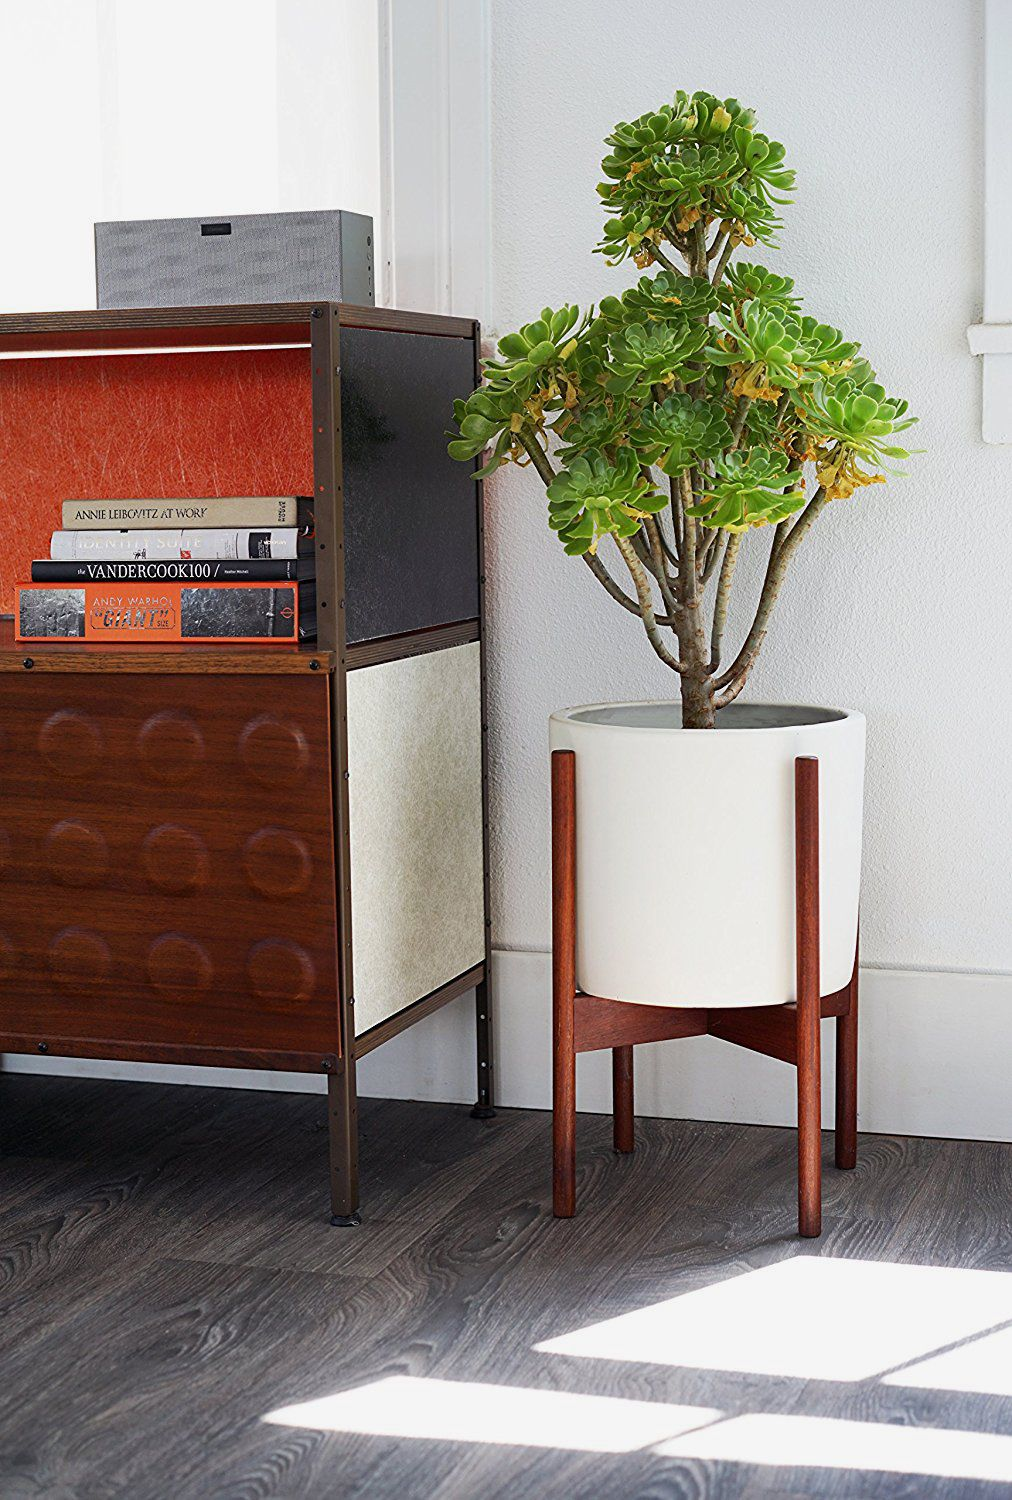 Modernica Case Study Ceramic Planter With Wood Stand — Small — White